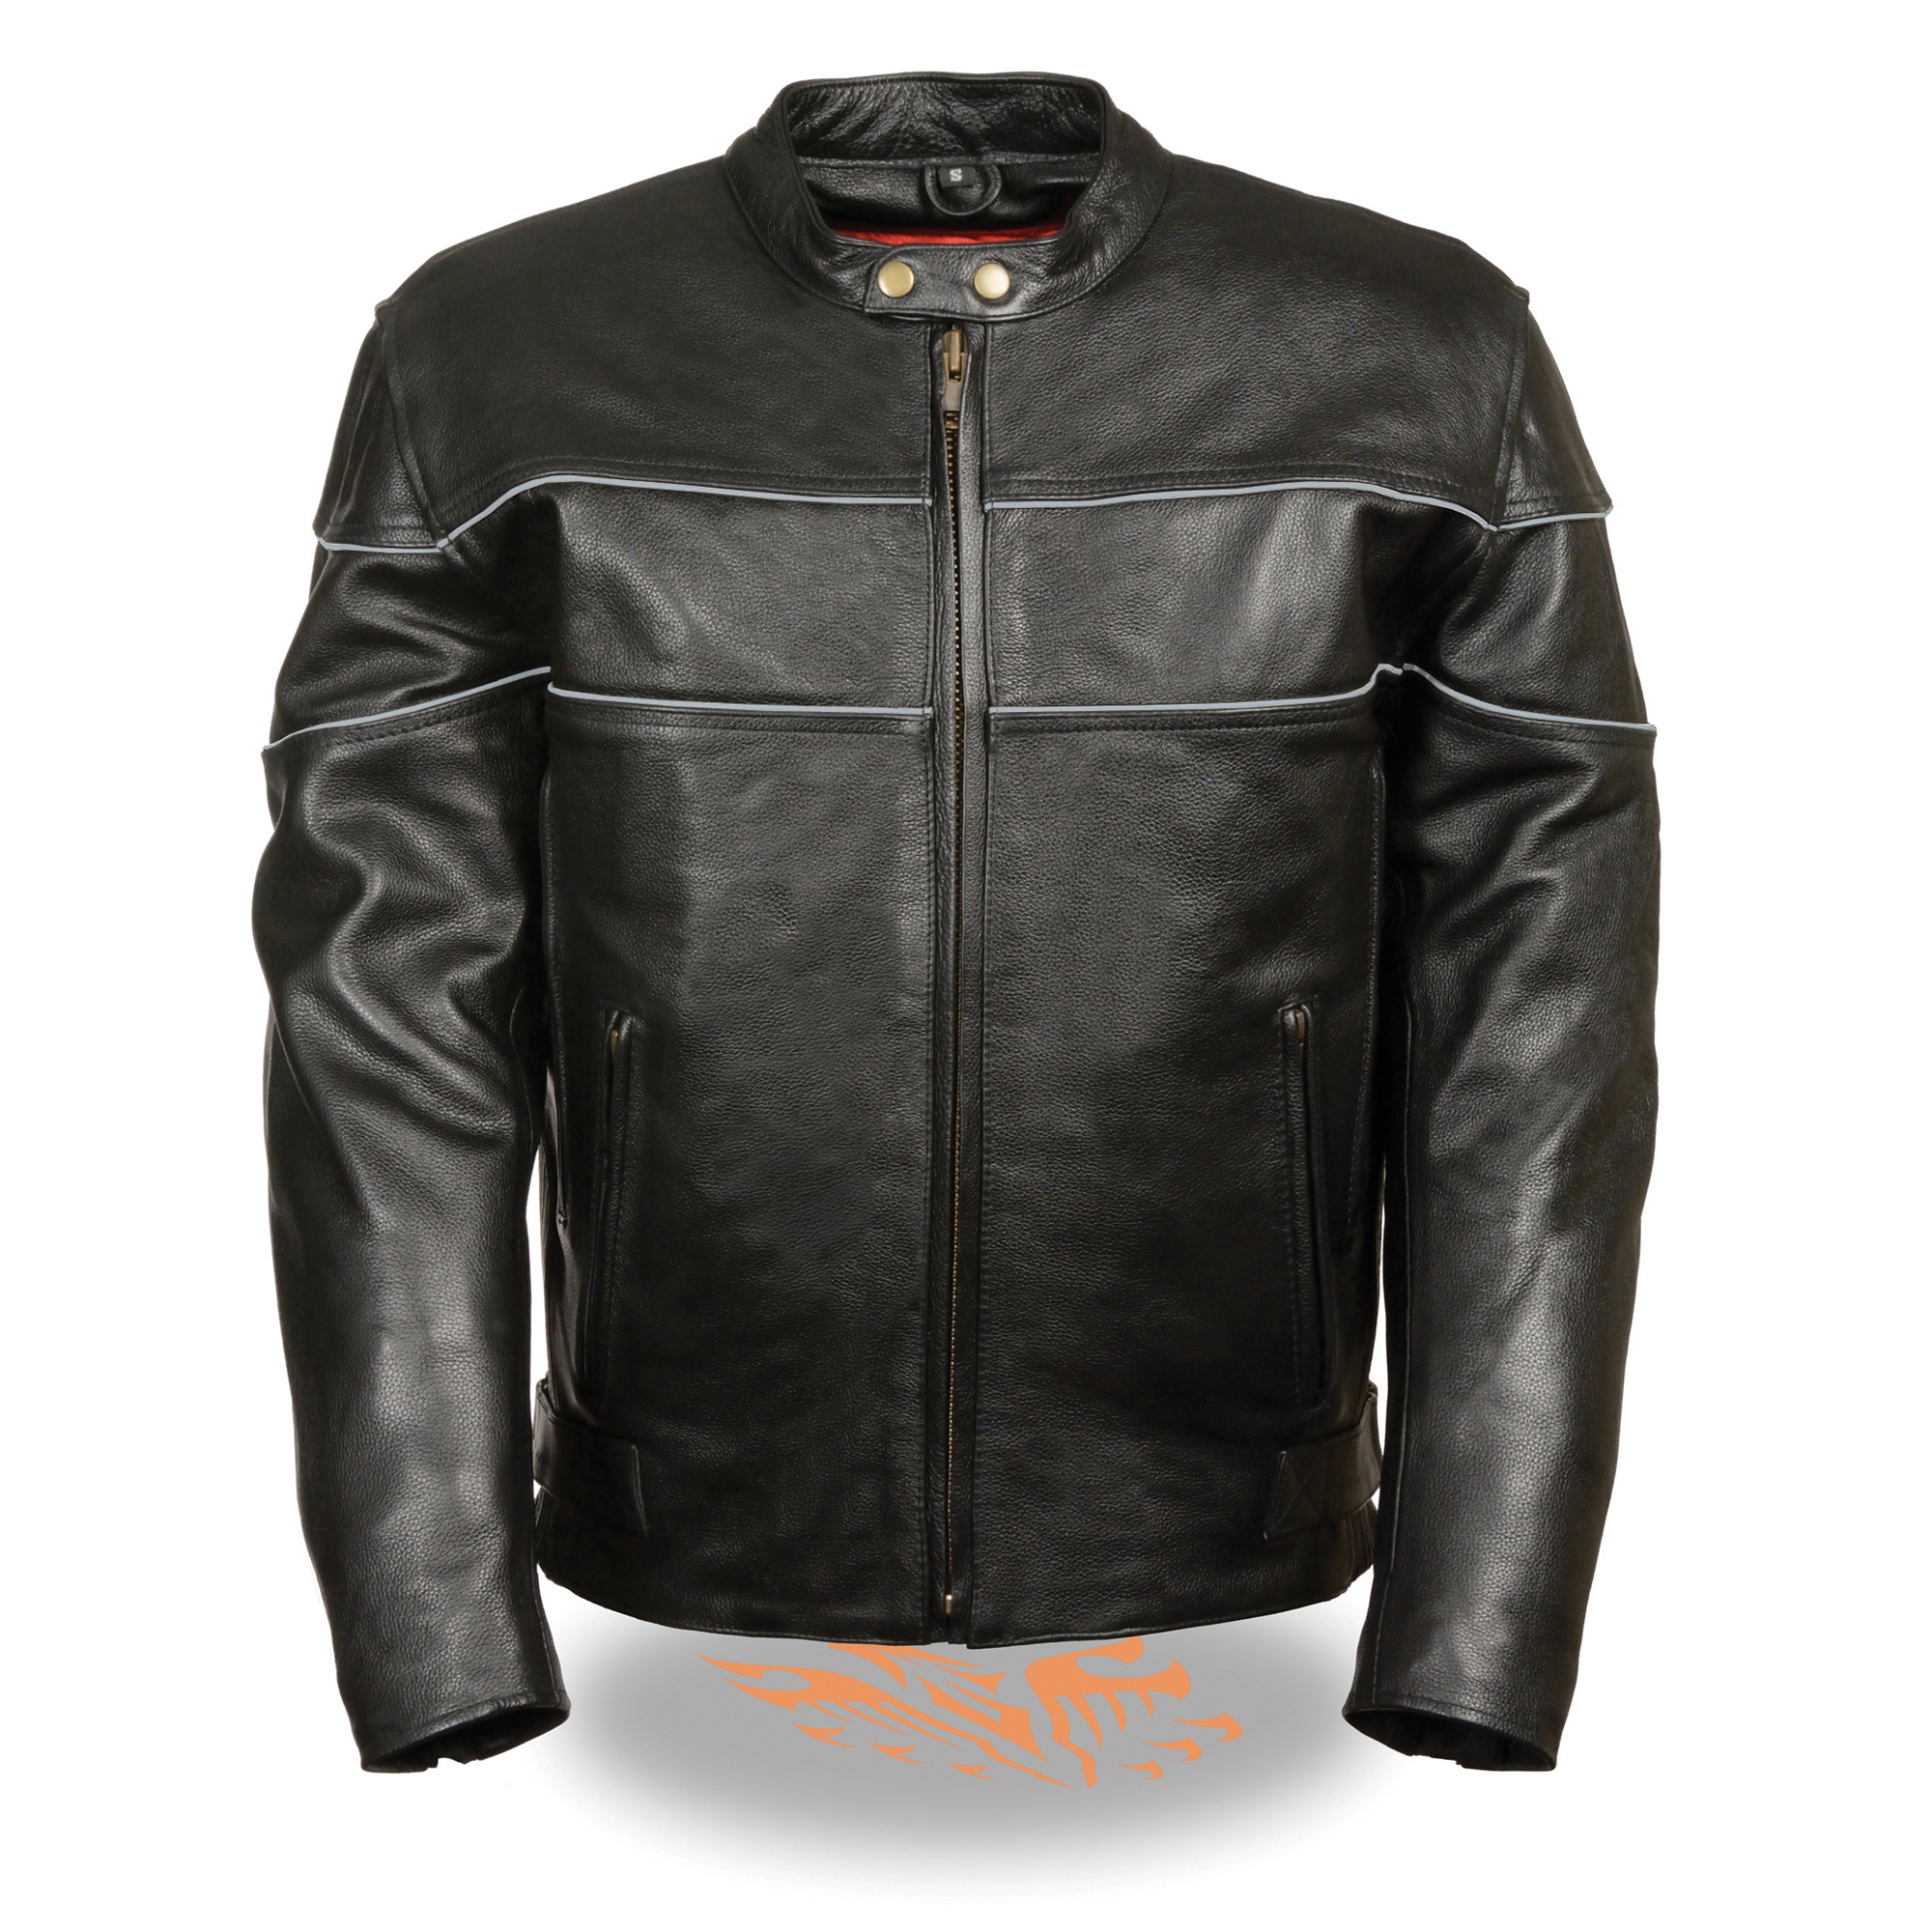 Dynamic Leather - Site - photo #38